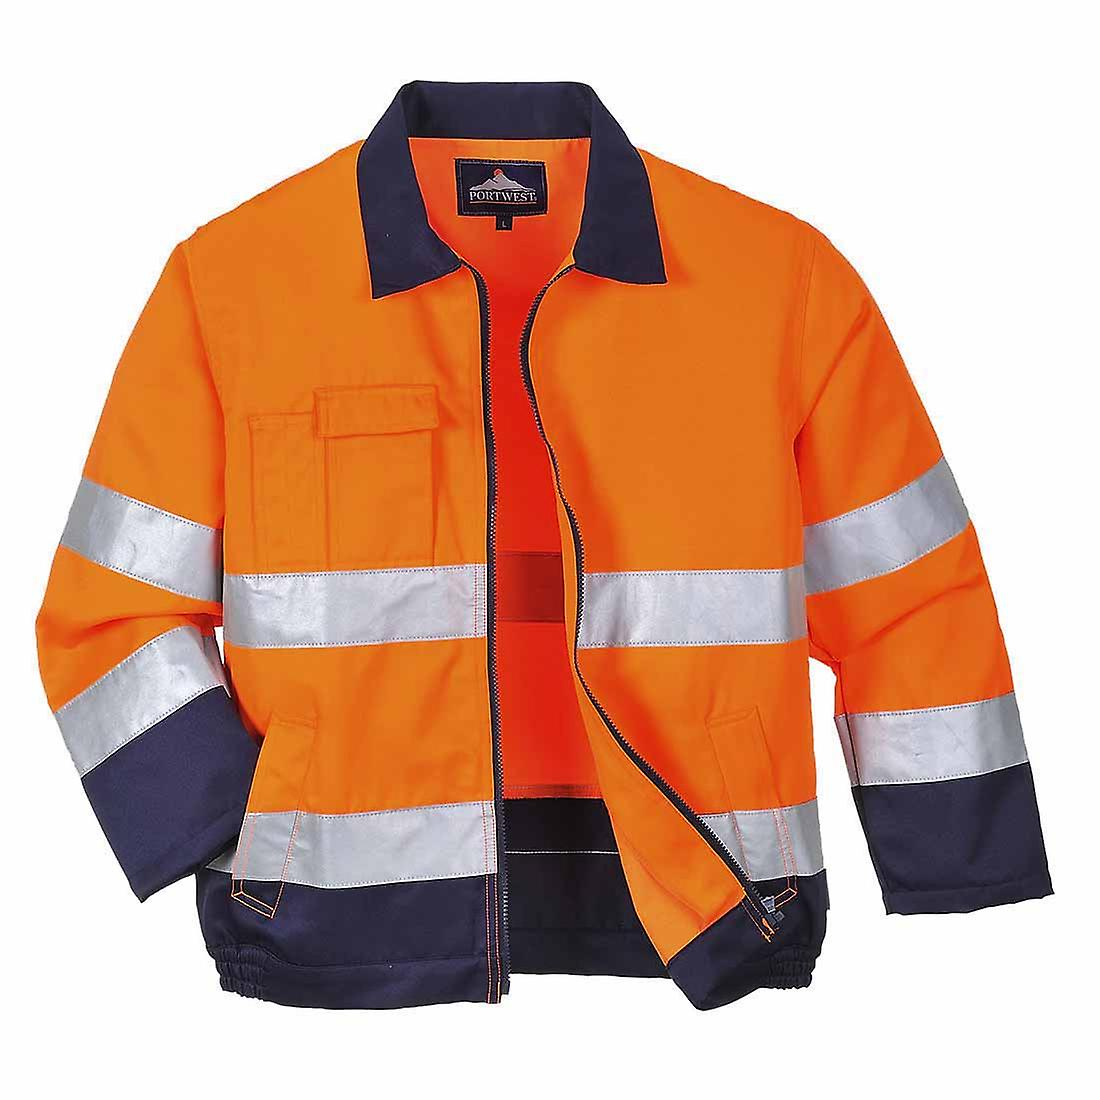 SUw - Texo Madrid Workwear Uniform Abrasion Resistant Hi-Vis Safety Jacket